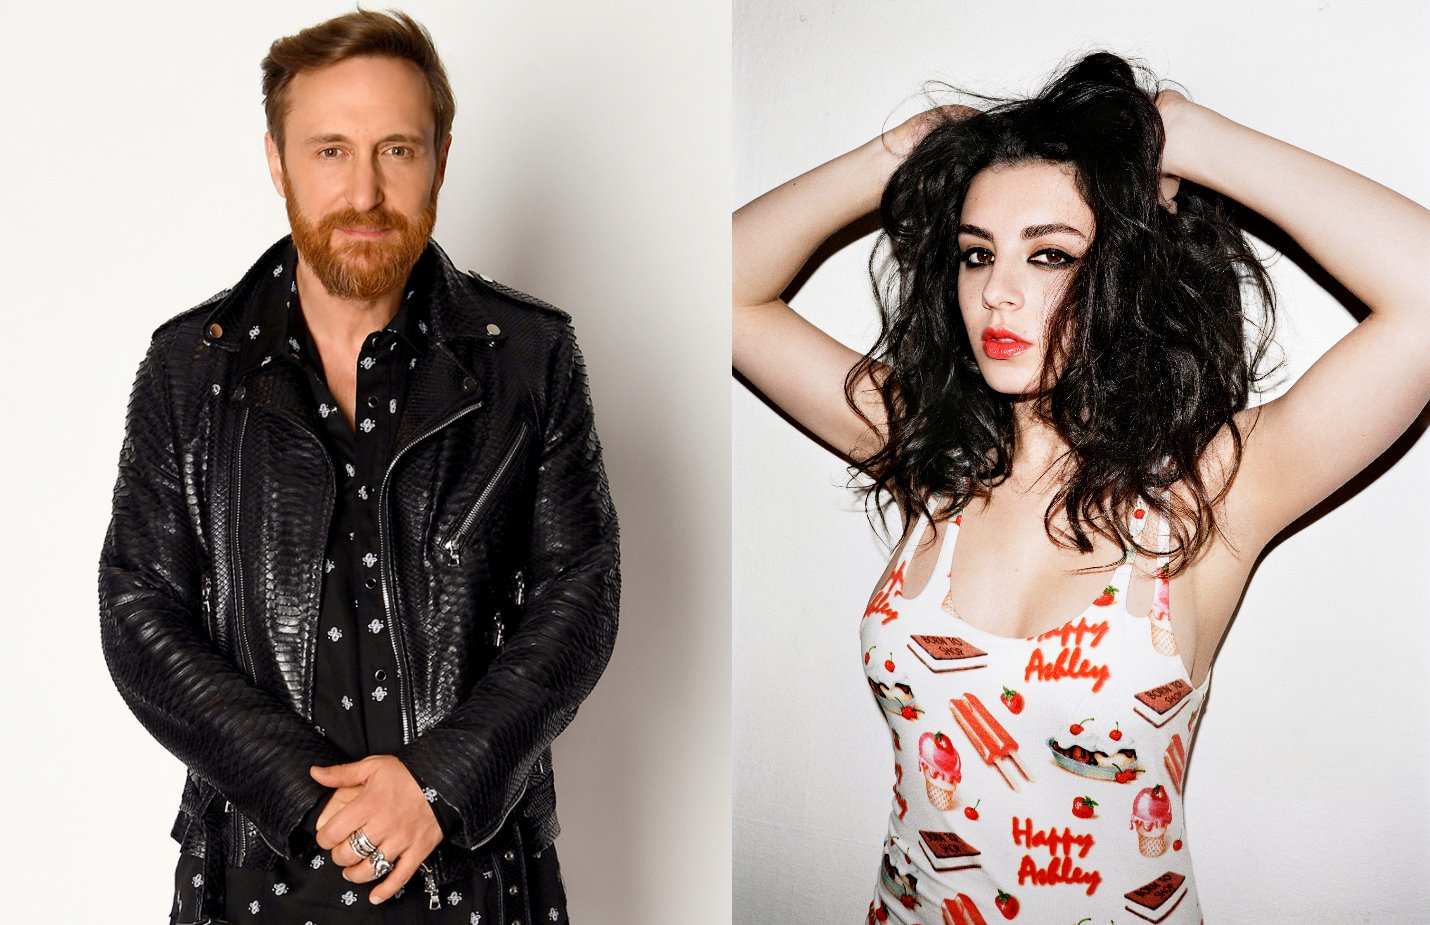 NEW MUSIC: David Guetta & Afrojack - Dirty Sexy Money ft. Charli XCX & French Montana